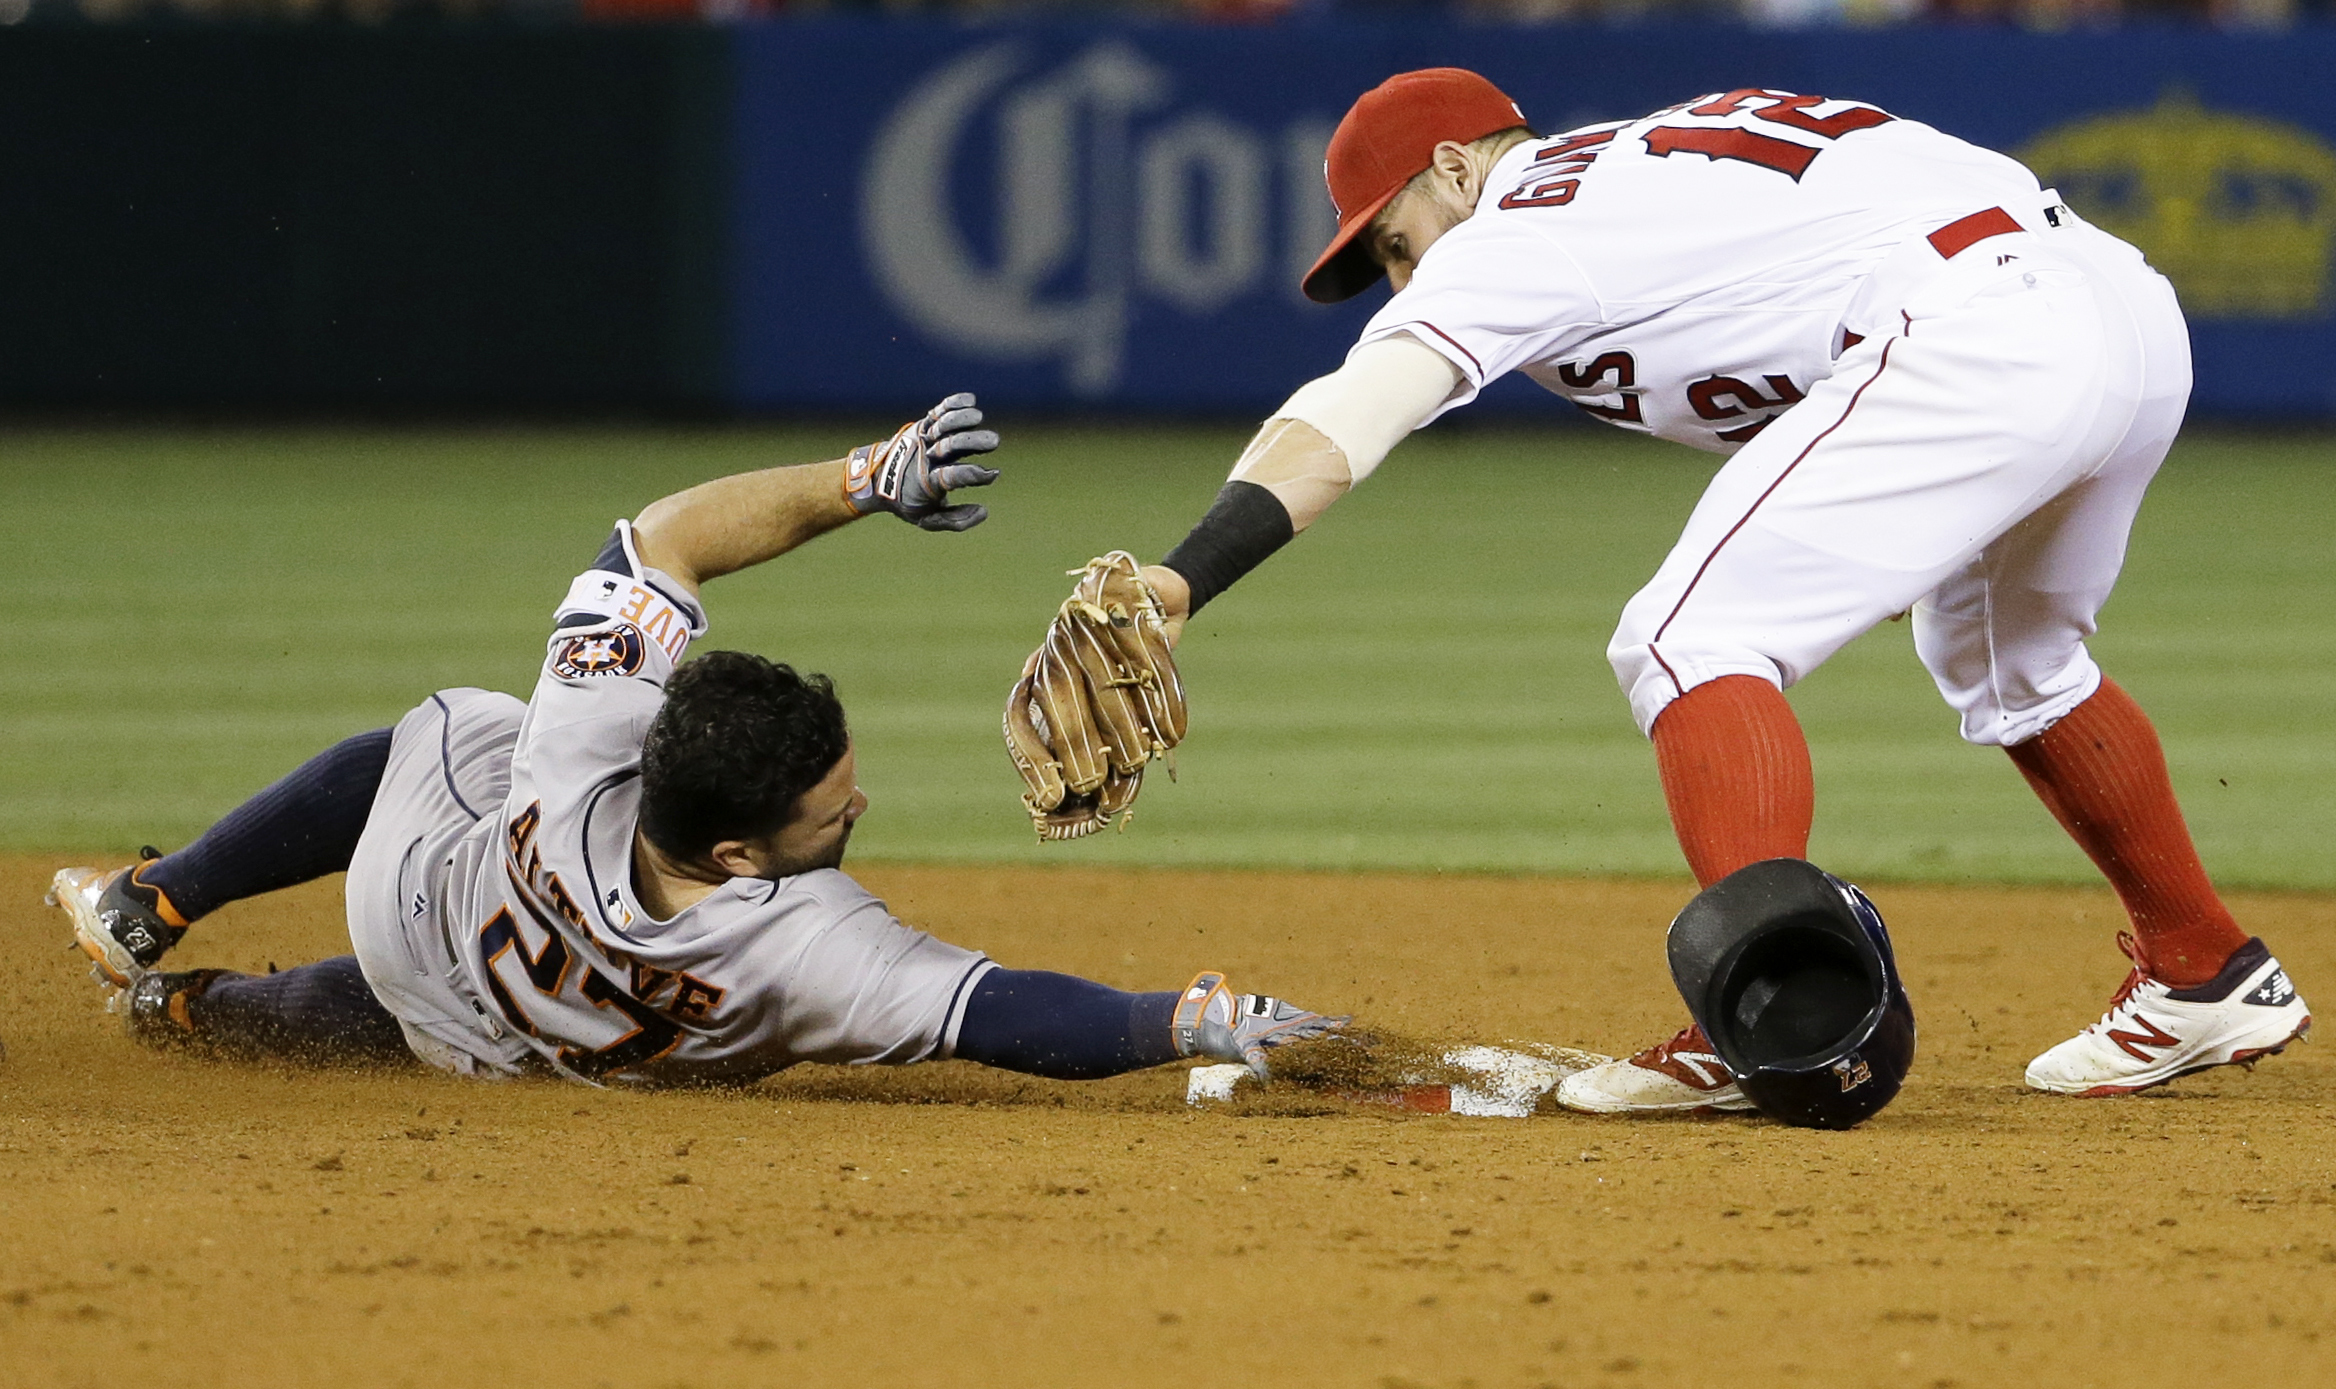 Houston Astros' Jose Altuve, left, tries to avoid the tag as he slides off second base before being tagged out by Los Angeles Angels second baseman Johnny Giavotella (12) during the fifth inning of a baseball game Tuesday, June 28, 2016, in Anaheim, Calif